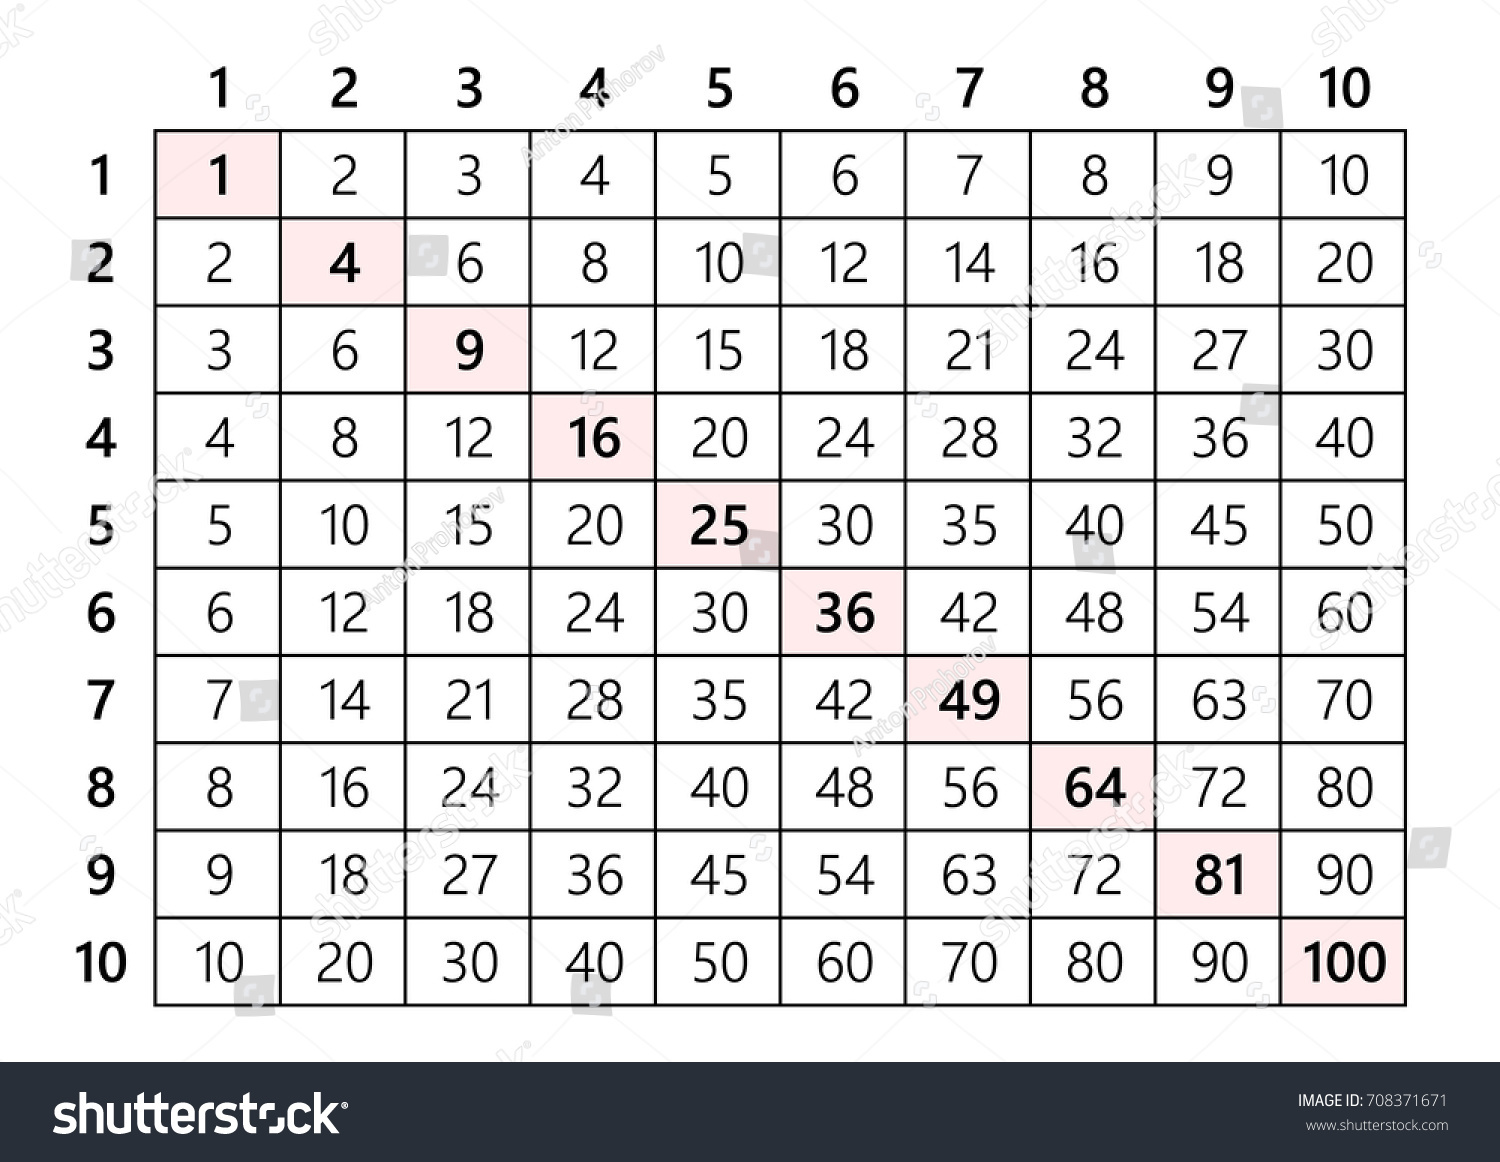 Multiplication table 10x10 stock vector 708371671 shutterstock multiplication table 10x10 gamestrikefo Images